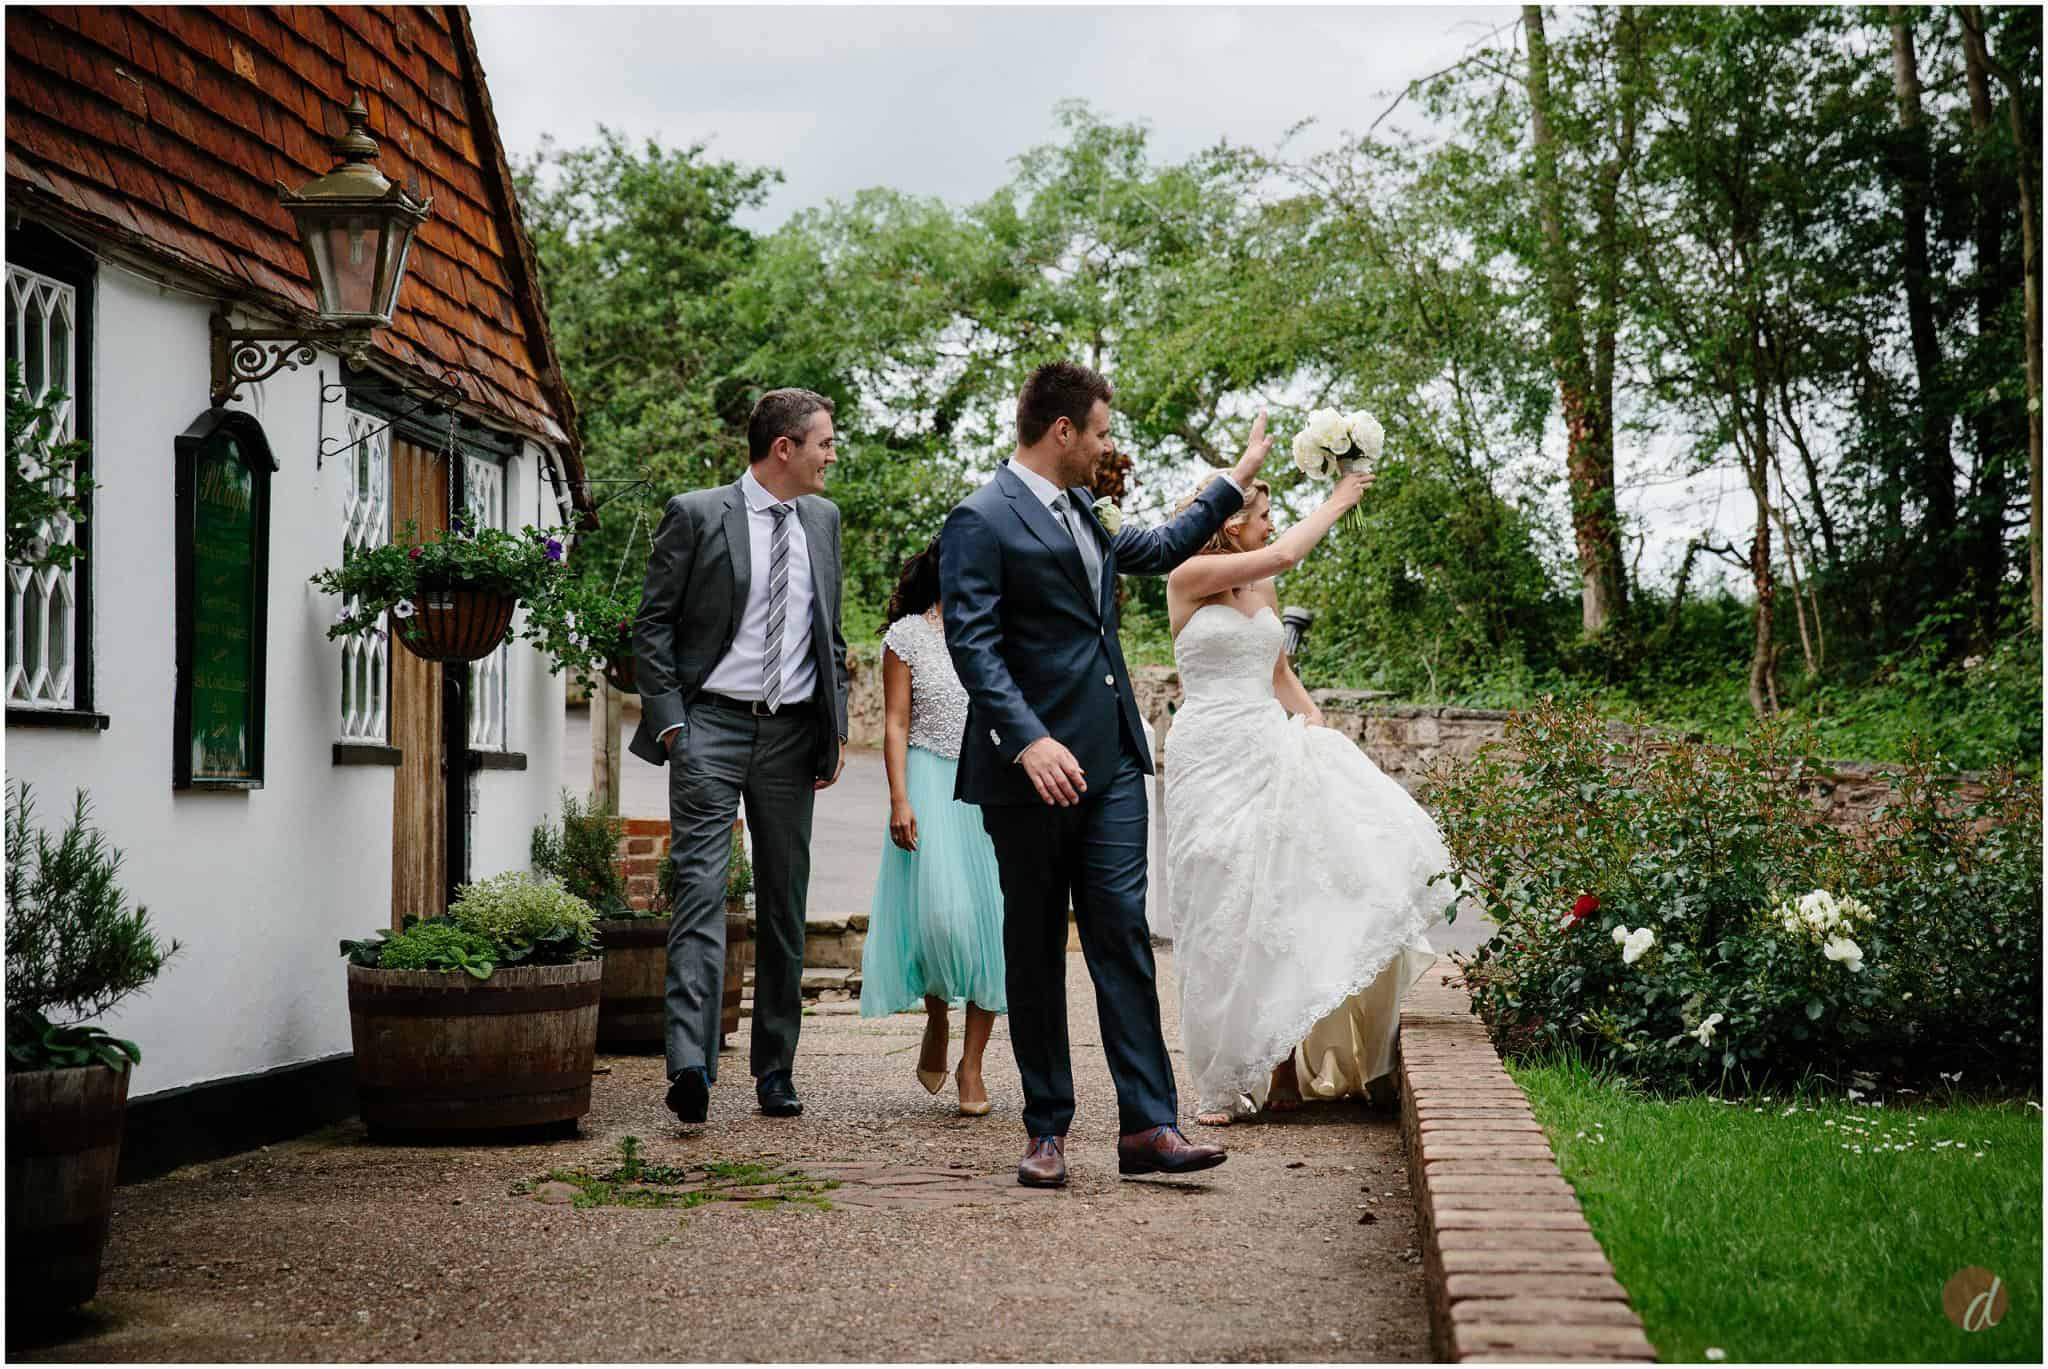 plough leigh wedding photography